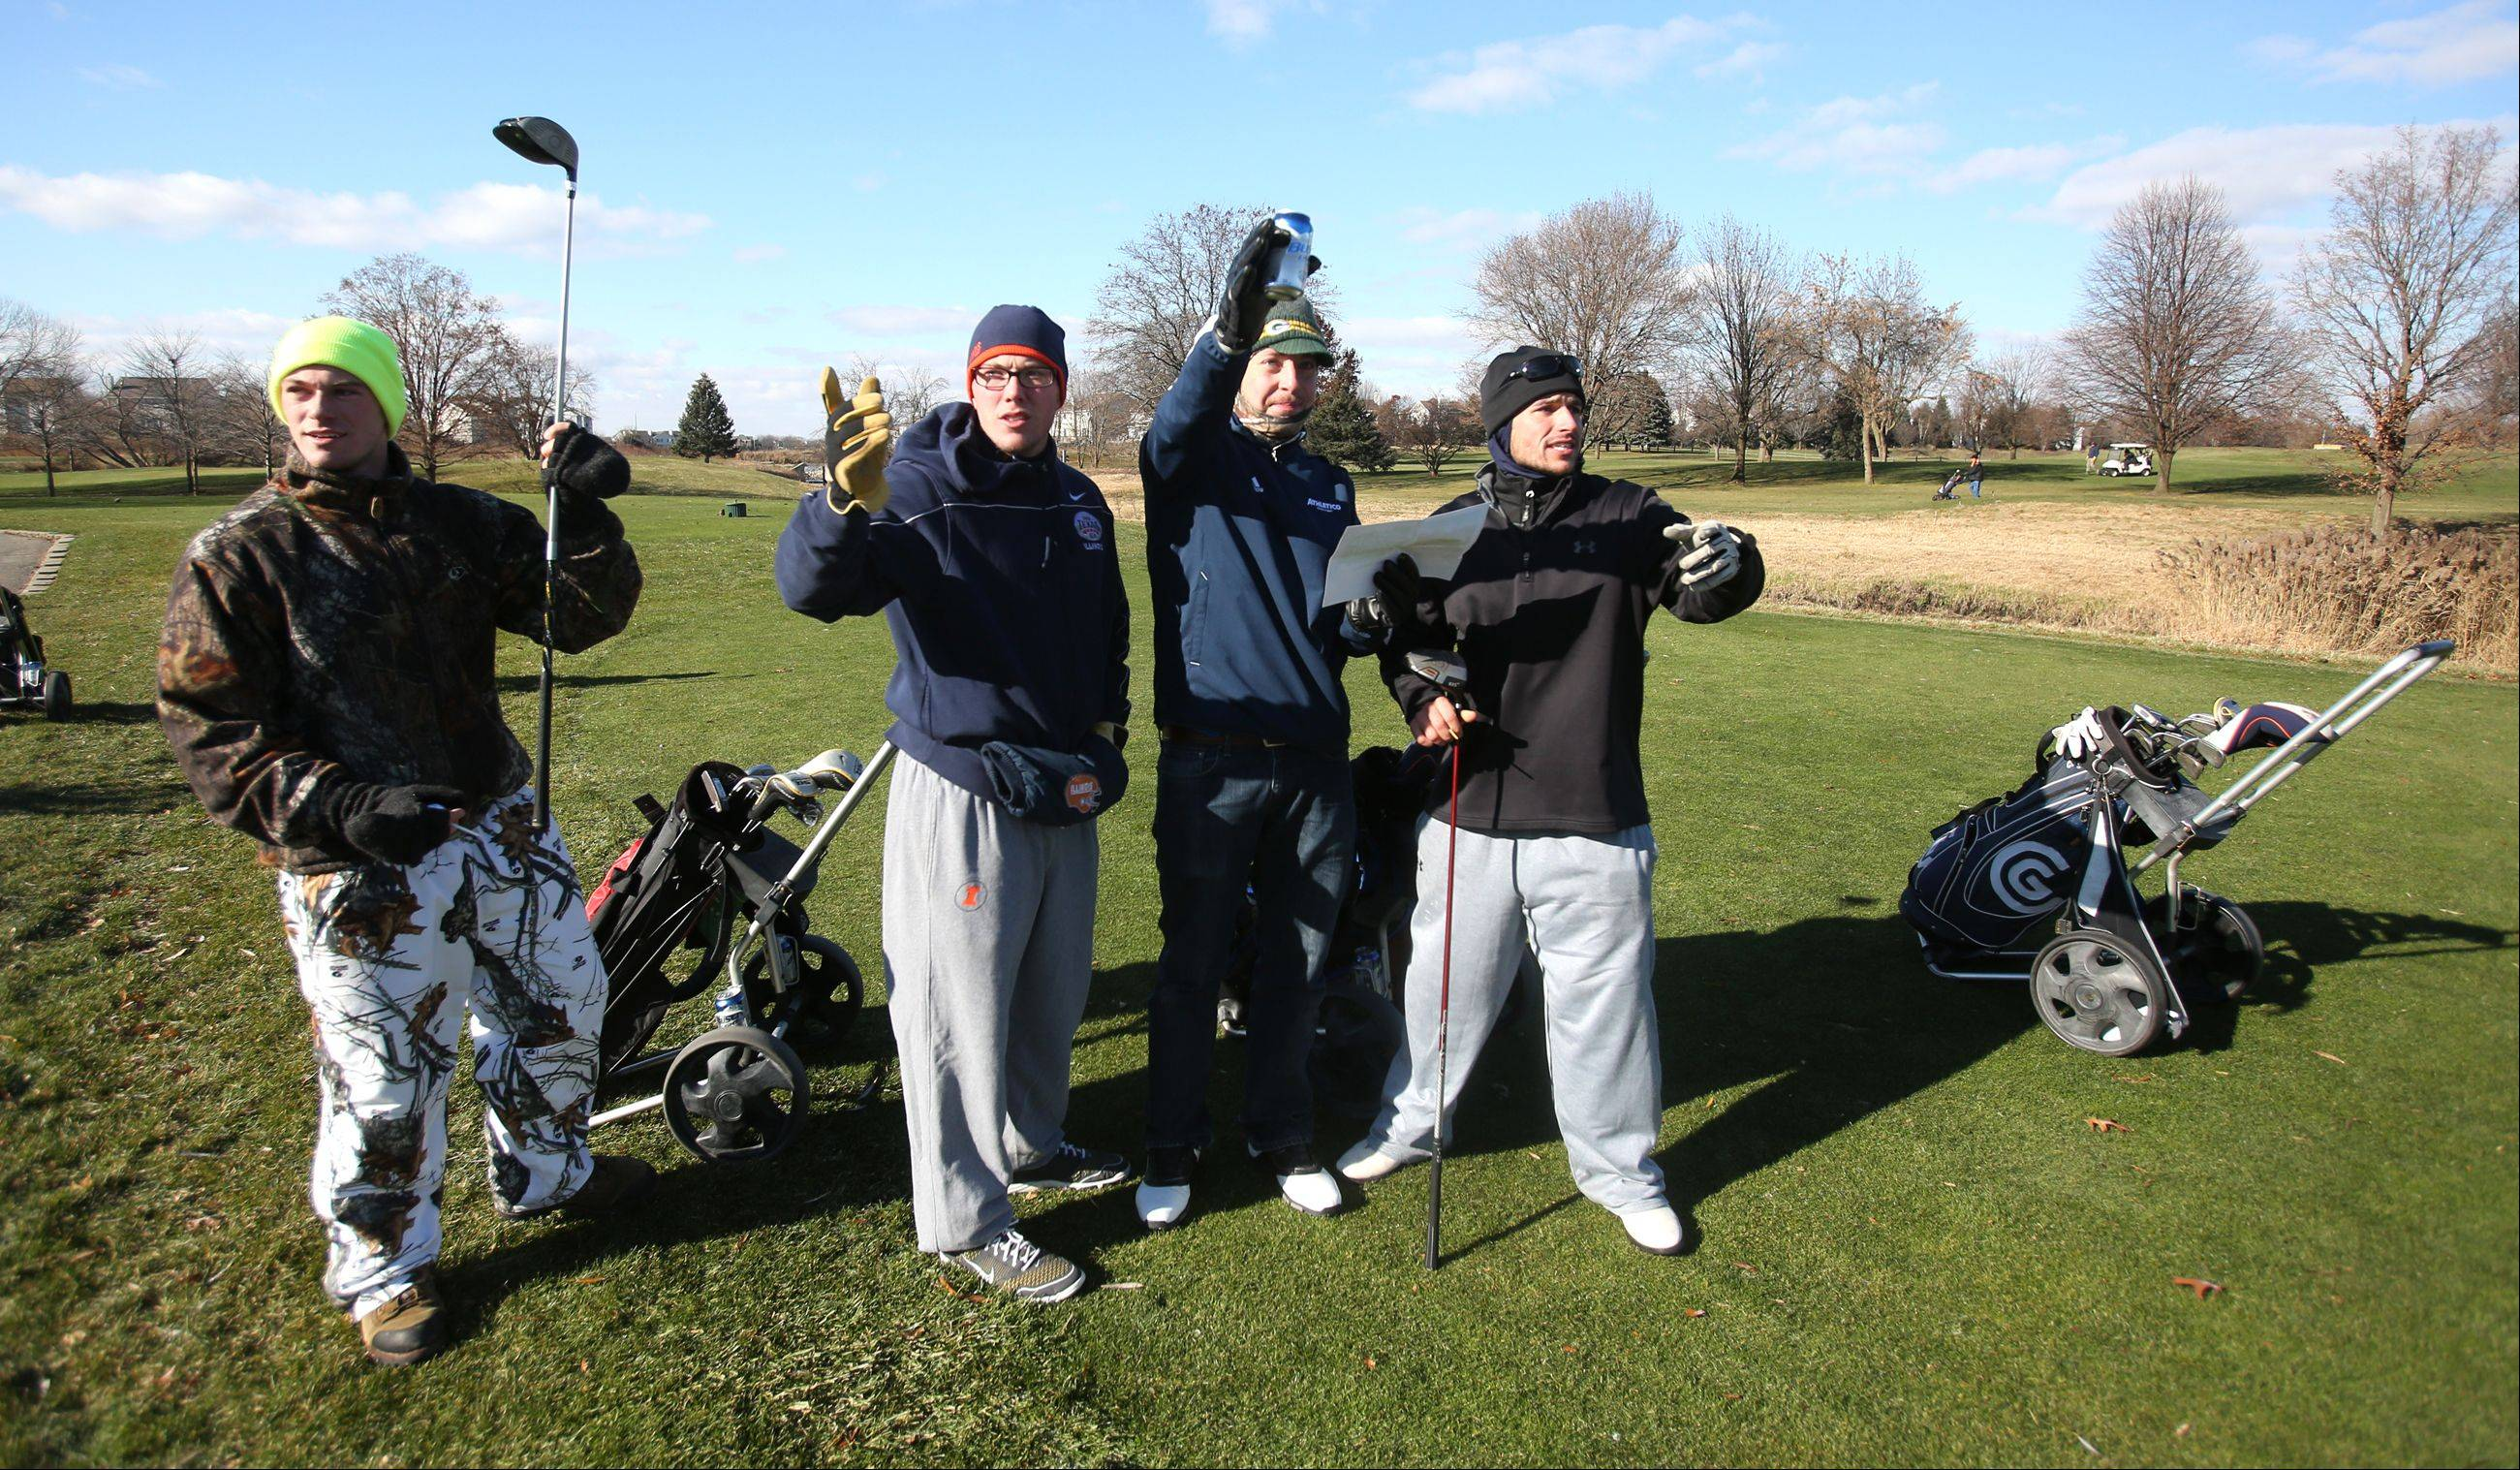 Derek Weber and Zach Pedersen of Joliet, along with Dan Hamburger and Matt Weber of Naperville, survey their next hole during the Naperville Park District's Turkey Shoot golf tournament Saturday at Springbrook Golf Course in Naperville.